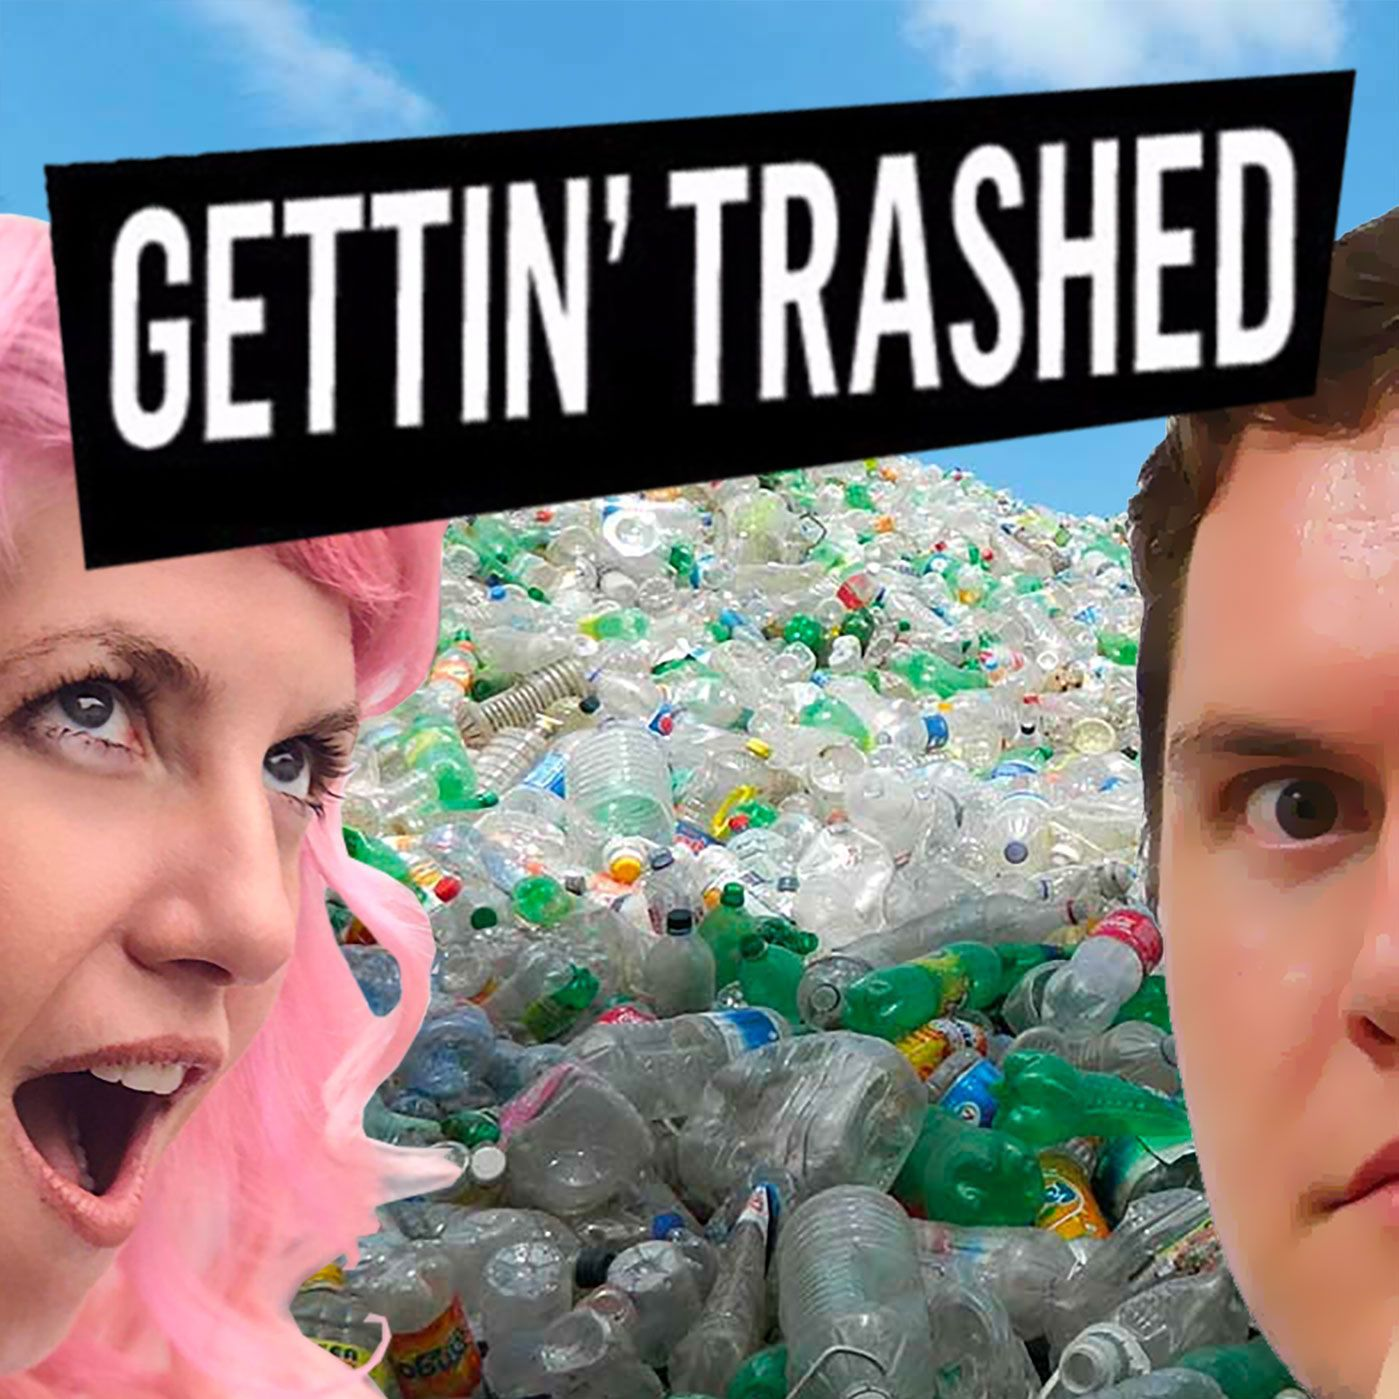 Gettin' Trashed - Episode 3